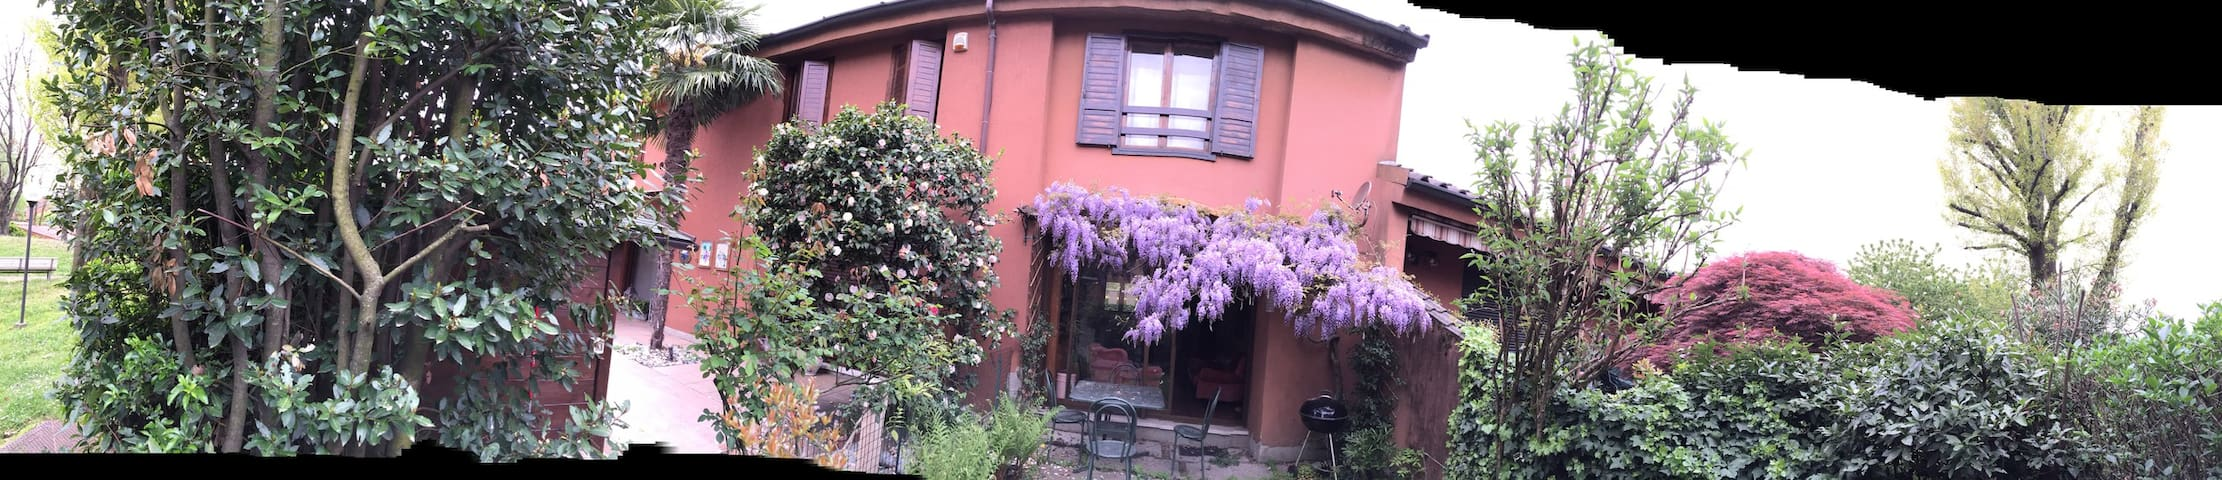 Glycine Villa 30 min from Milan - Arlate - Casa